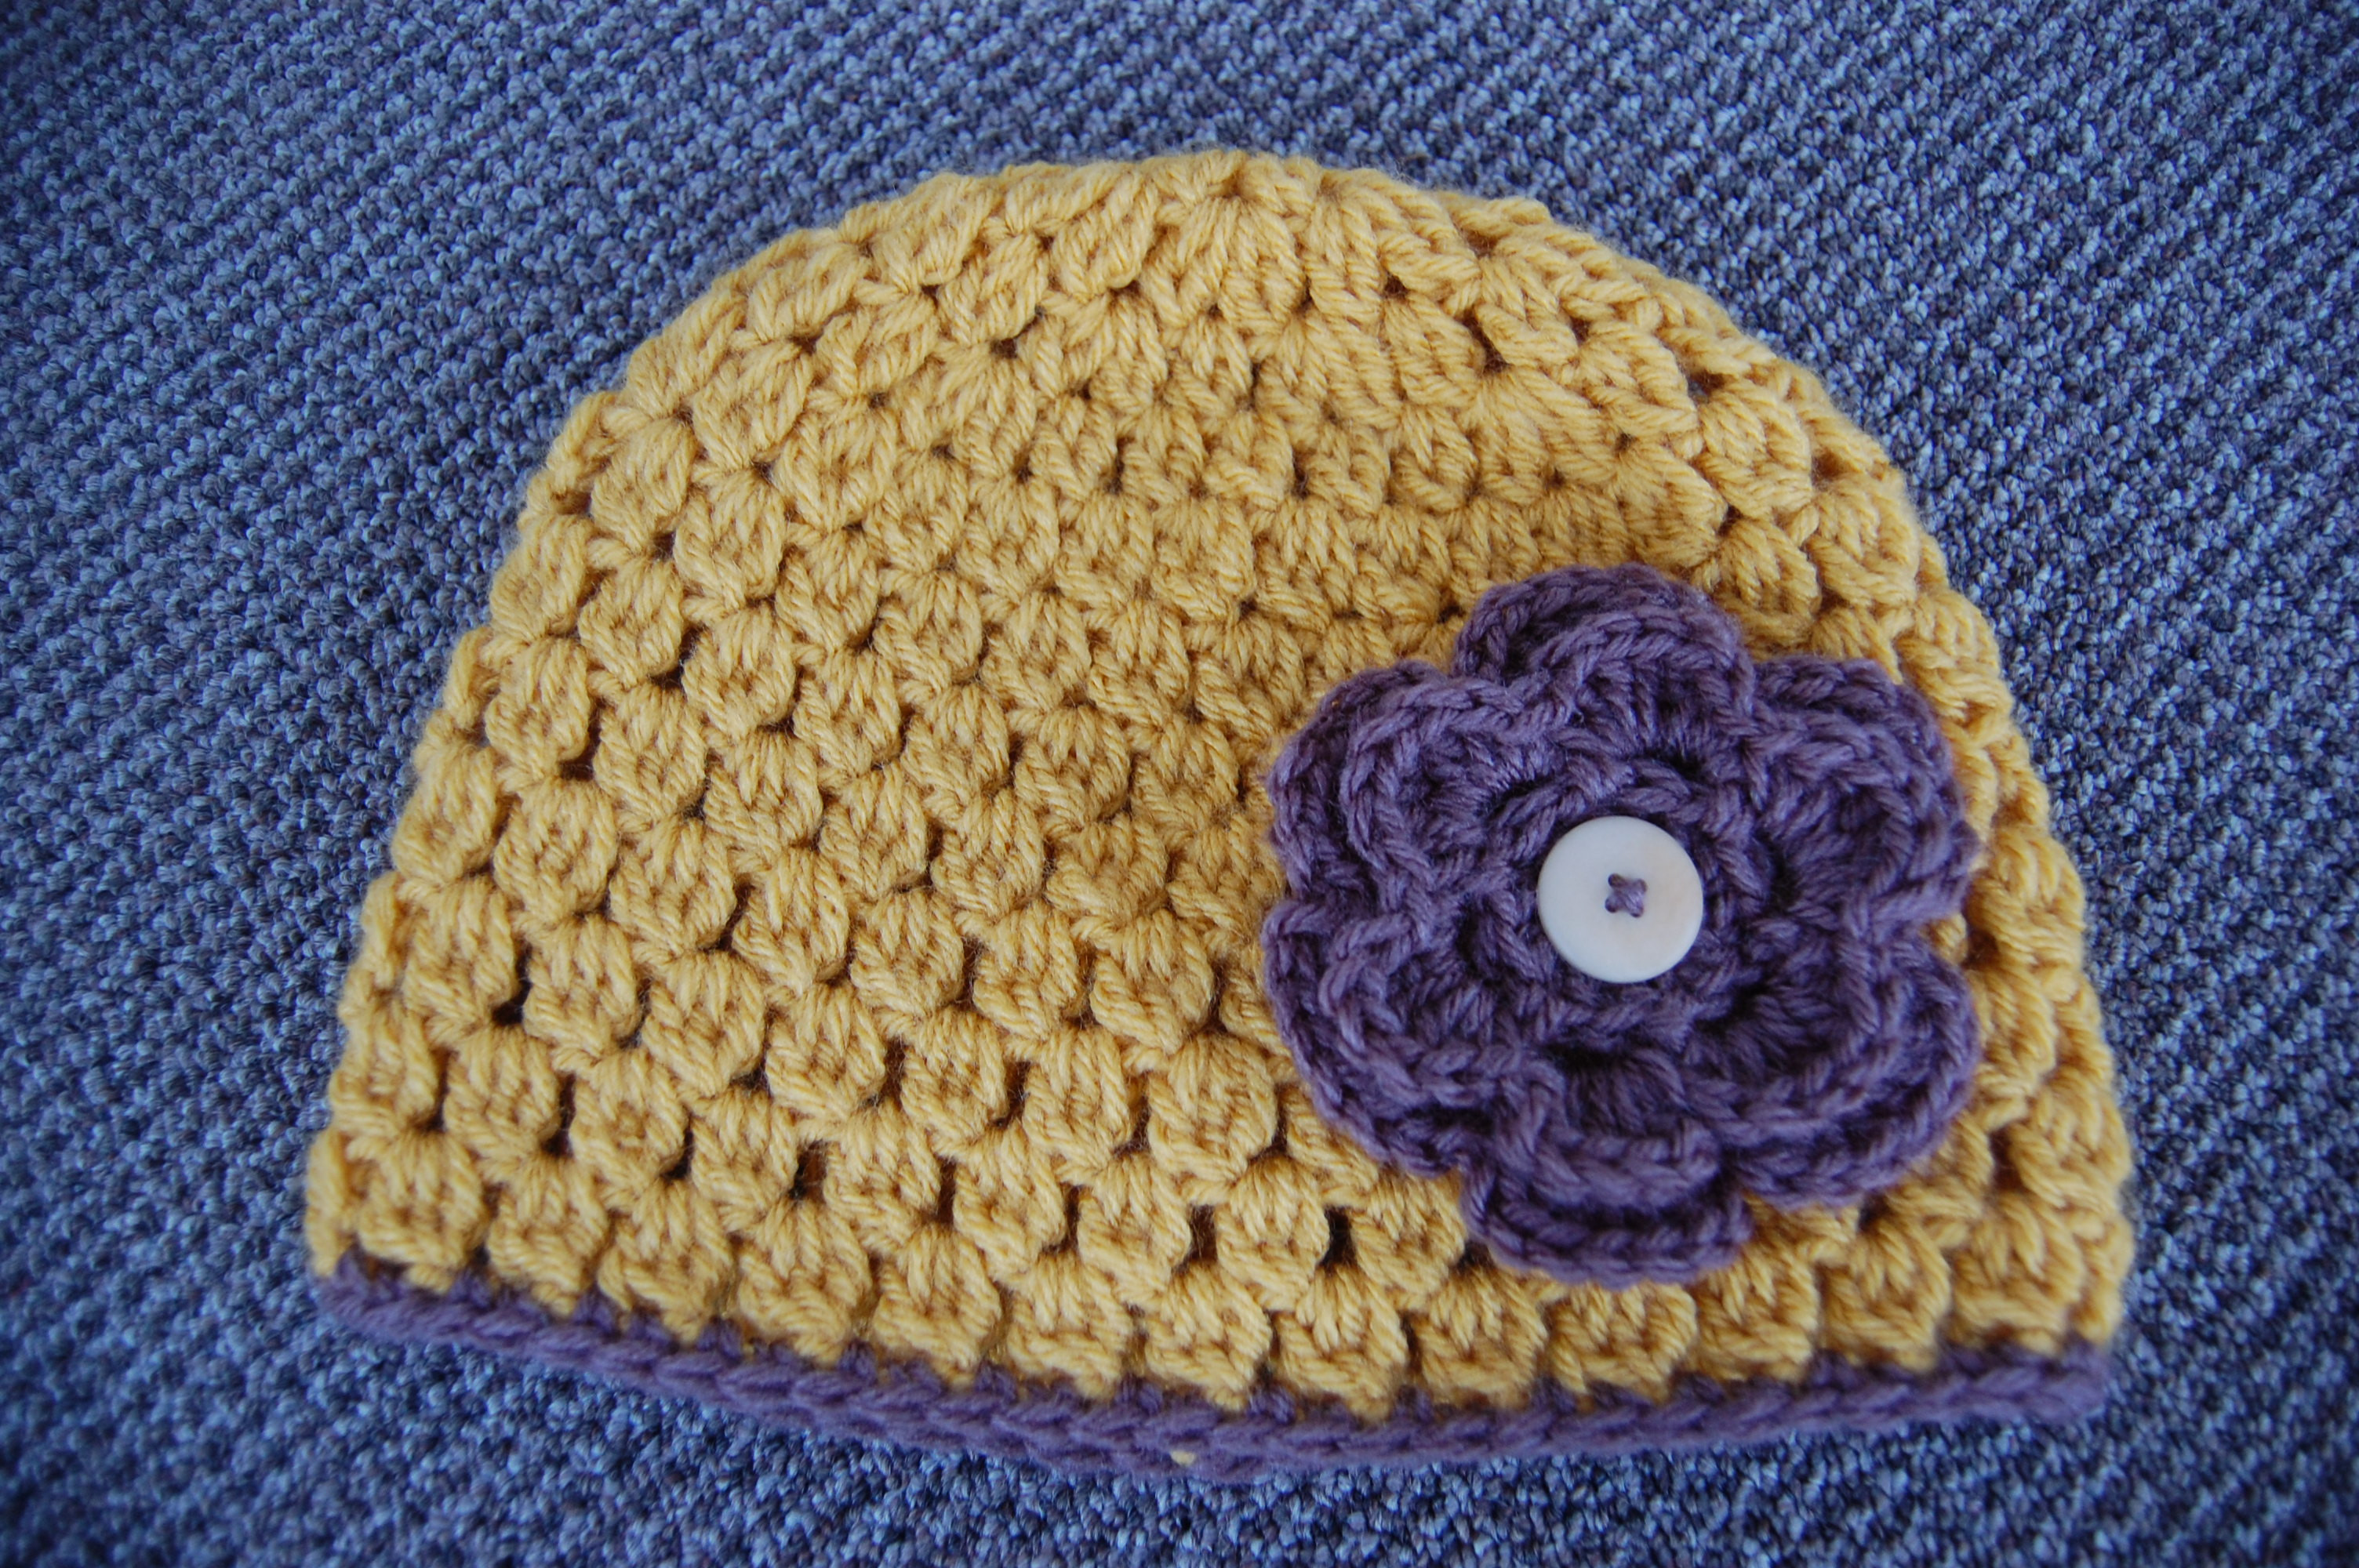 Easy Crochet Hat Patterns Unique Redheart Yarn Free Patterns for Crocheted Hats – Easy Of Innovative 46 Pictures Easy Crochet Hat Patterns